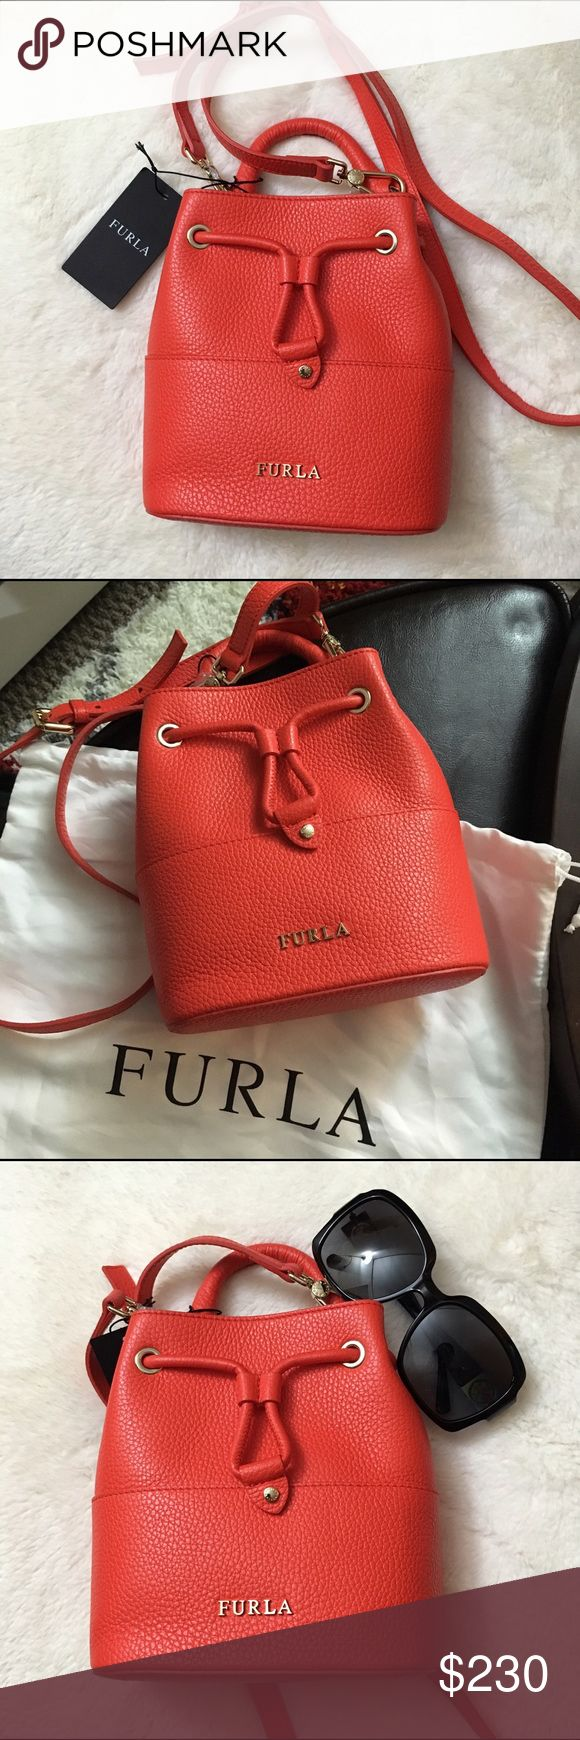 """SALE! ❤️ NWT Furla ❤️ mini leather bucket bag NWT Furla Brooklyn small leather drawstring bucket bag in Arancio ❤️ Pebbled (yet super soft) leather with golden hardware ❤️ 3"""" drop top handle ❤️ removable + adjustable shoulder strap approx 22"""" drop ❤️ 7.5""""H x 6.5""""W x 3""""D ❤️ super adorable  bundle to save more! Furla Bags Crossbody Bags"""